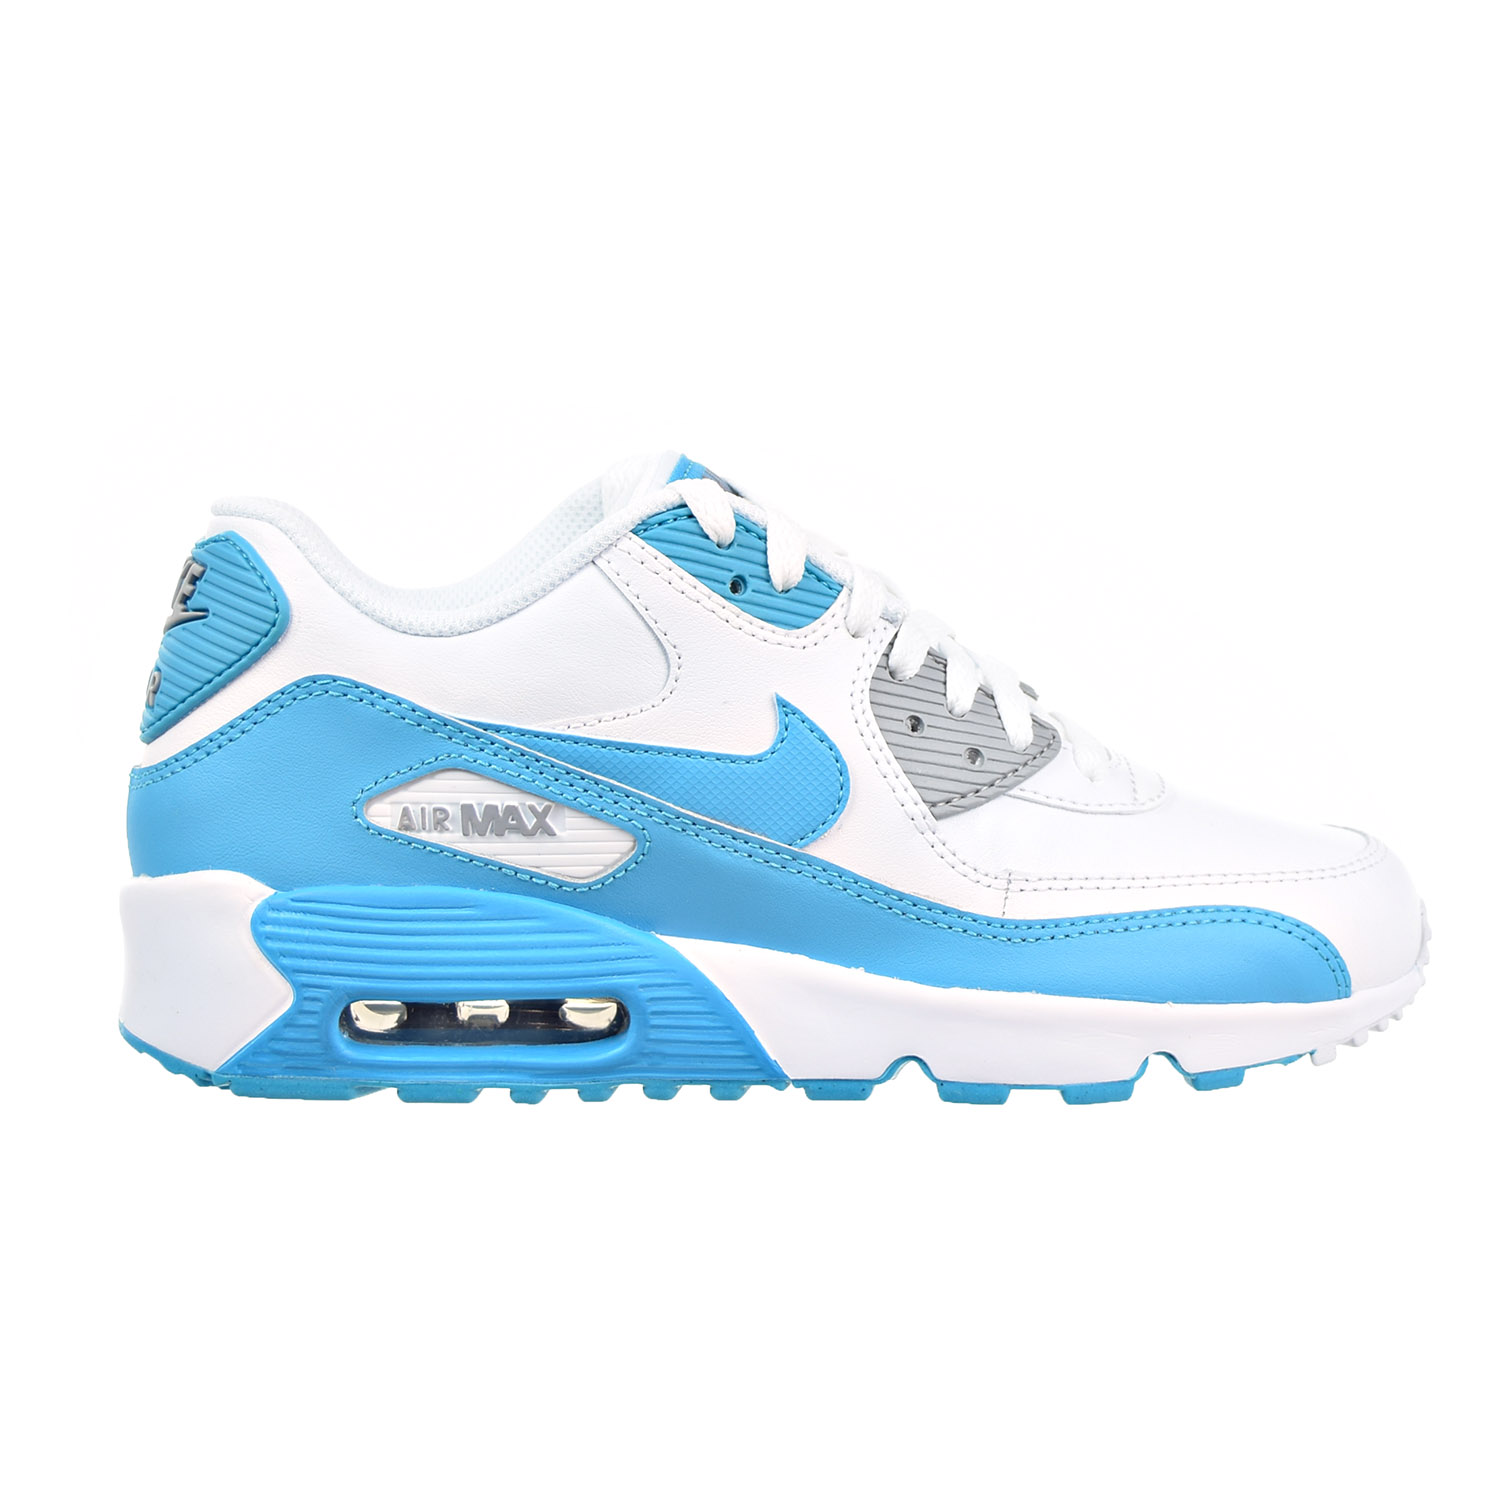 Nike Air Max 90 LTR Big Kid's Shoes White/Chlorine Blue/Wolf Grey 833376-101 (5.5 M US)